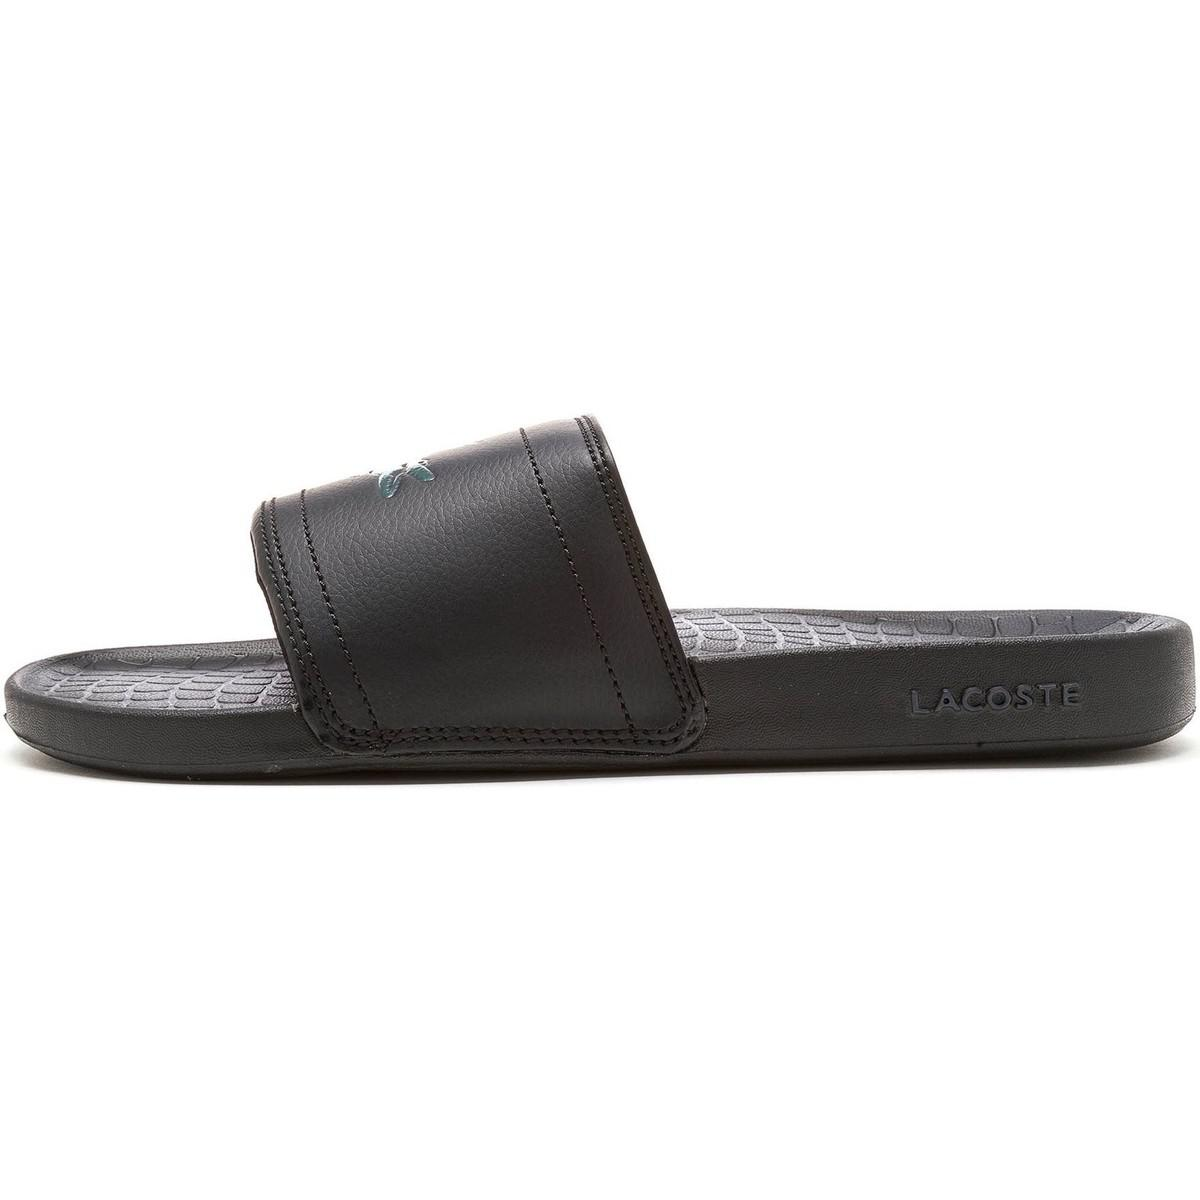 053177cab30e Lacoste Fraisier Brd1 Us Spm Slide Pool Beach Sandals In Black ...